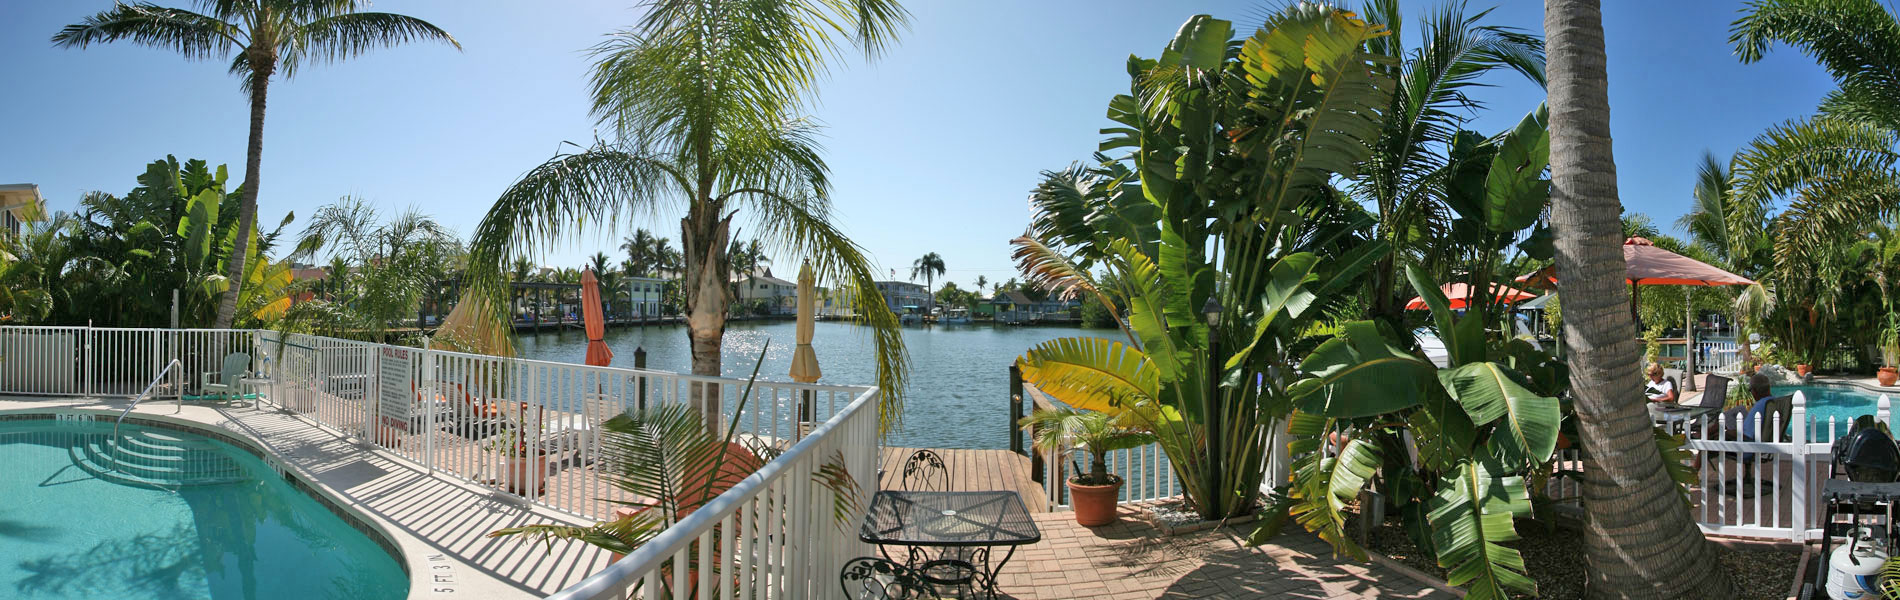 Prime Located In The Heart Of Fort Myers Beach Florida